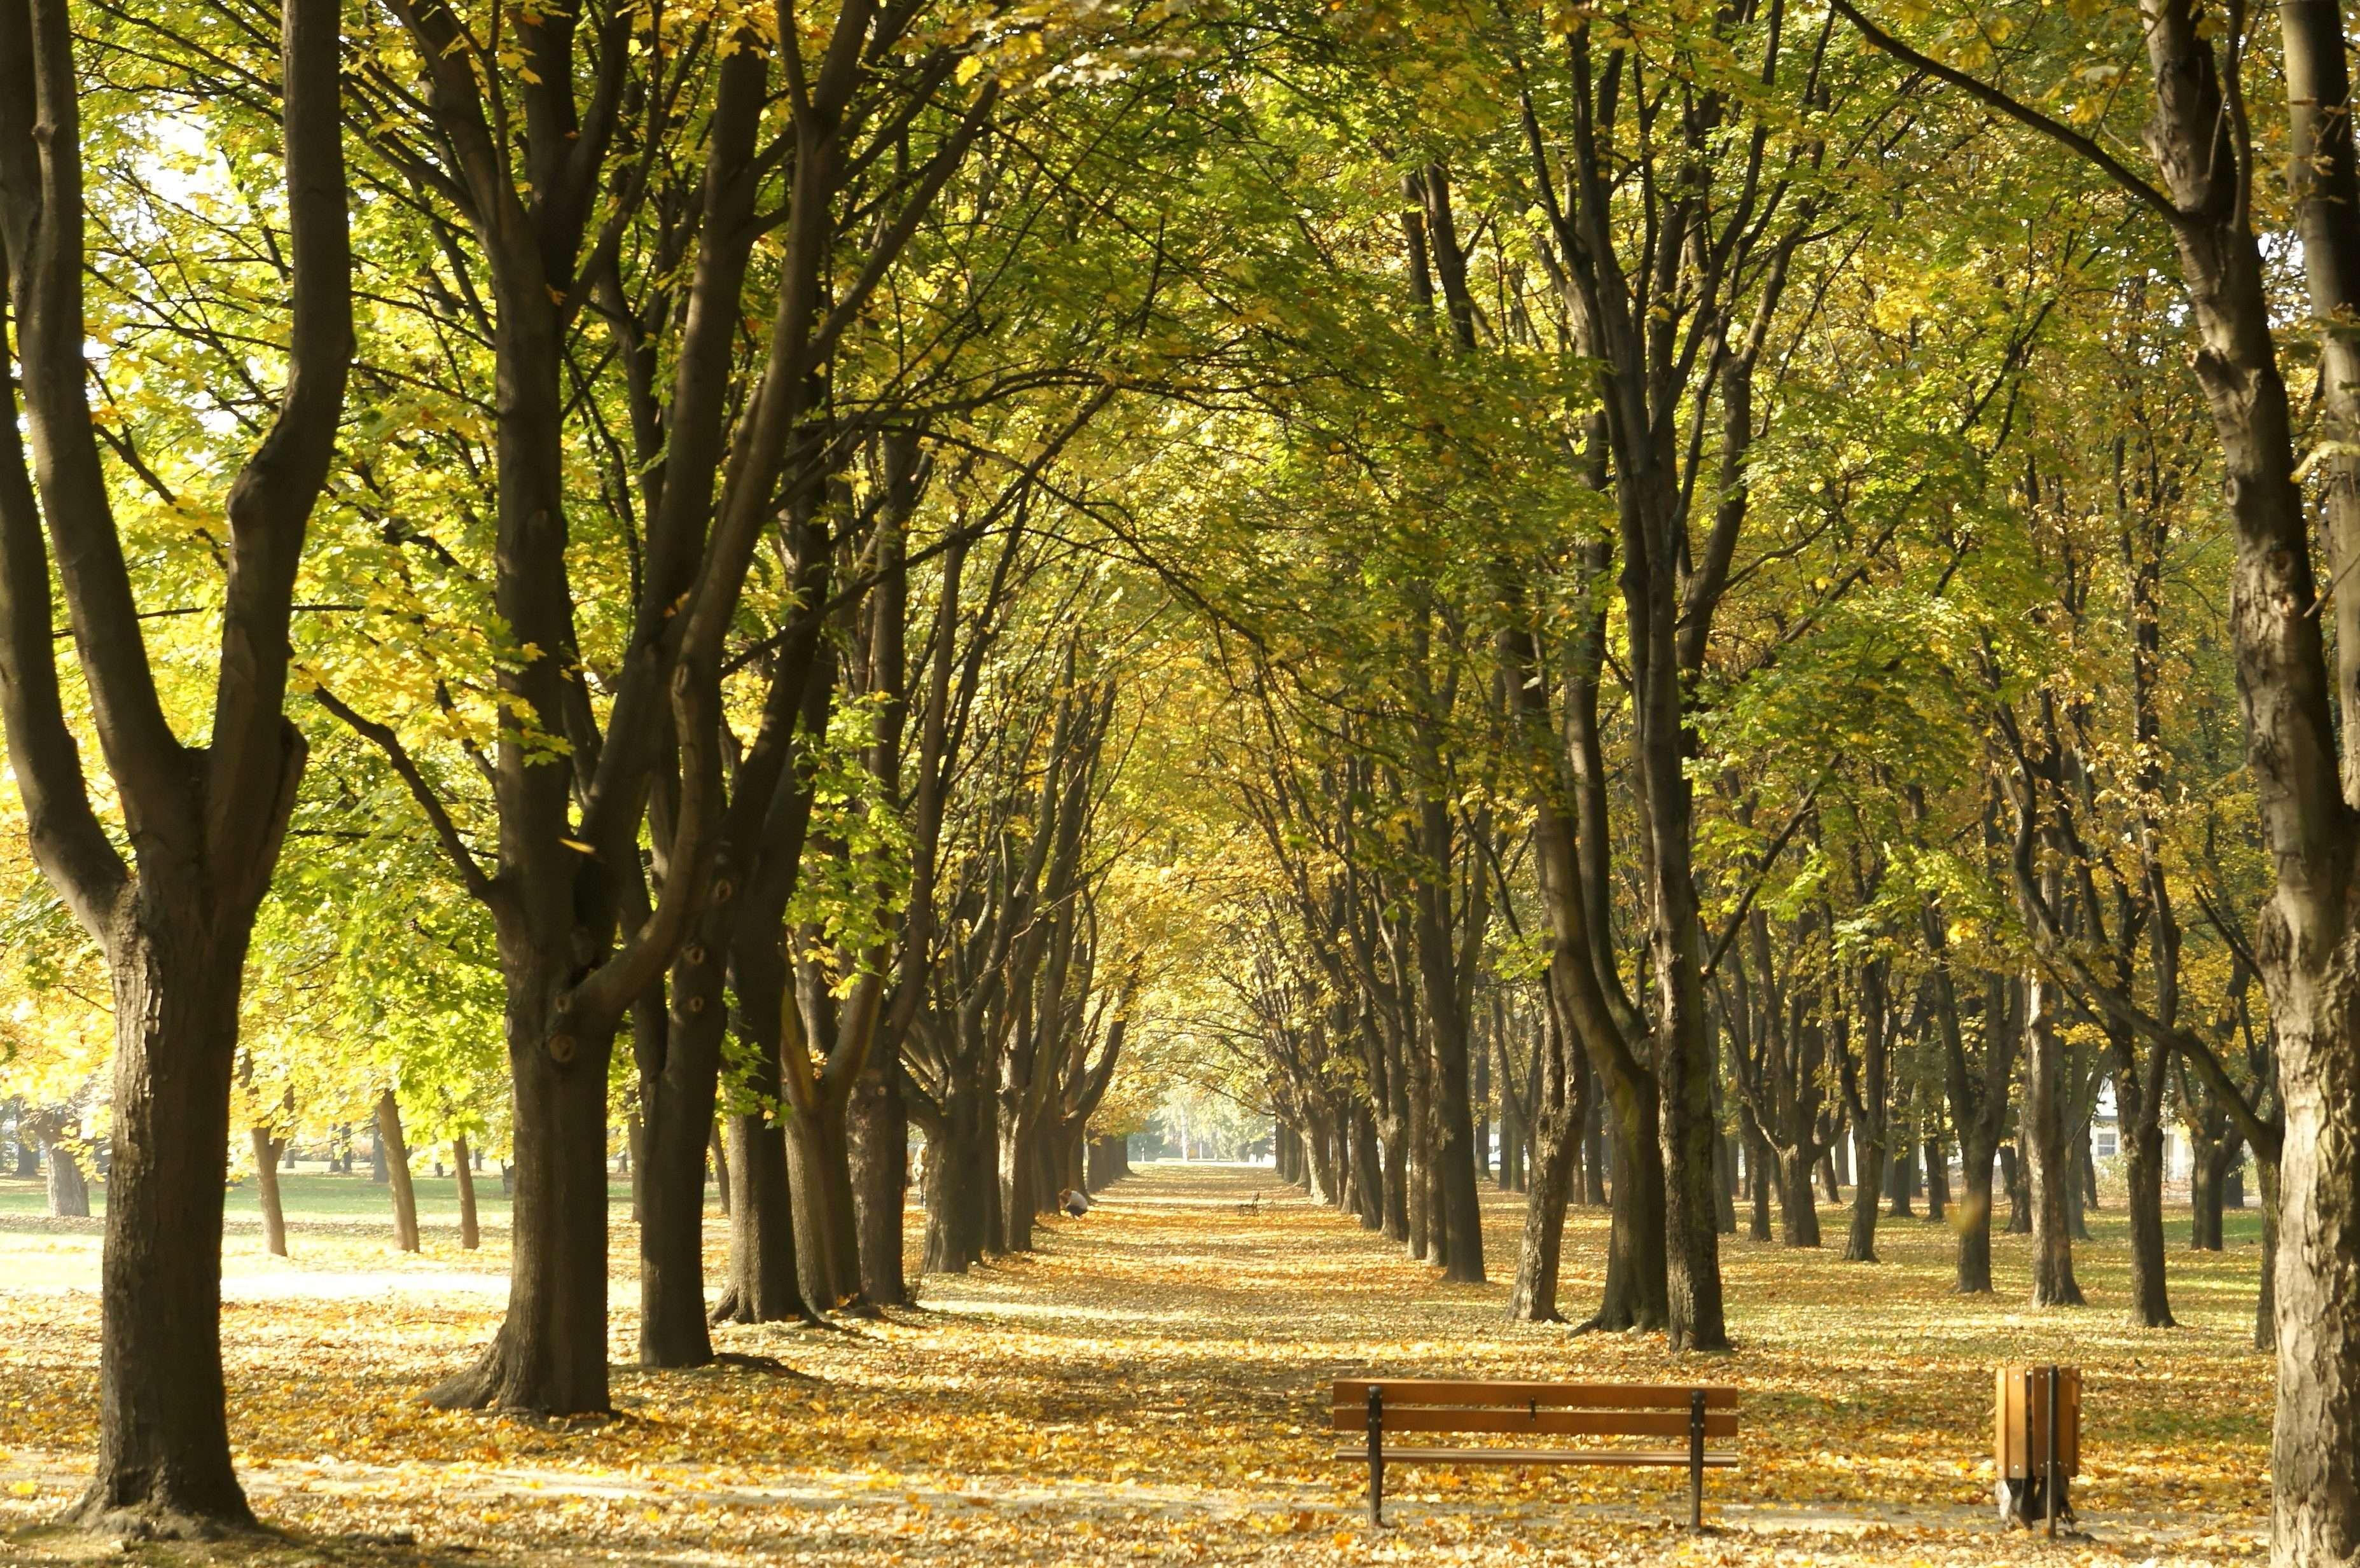 Free picture: avenue, trees, autumn, forest path, garden, urban area ...